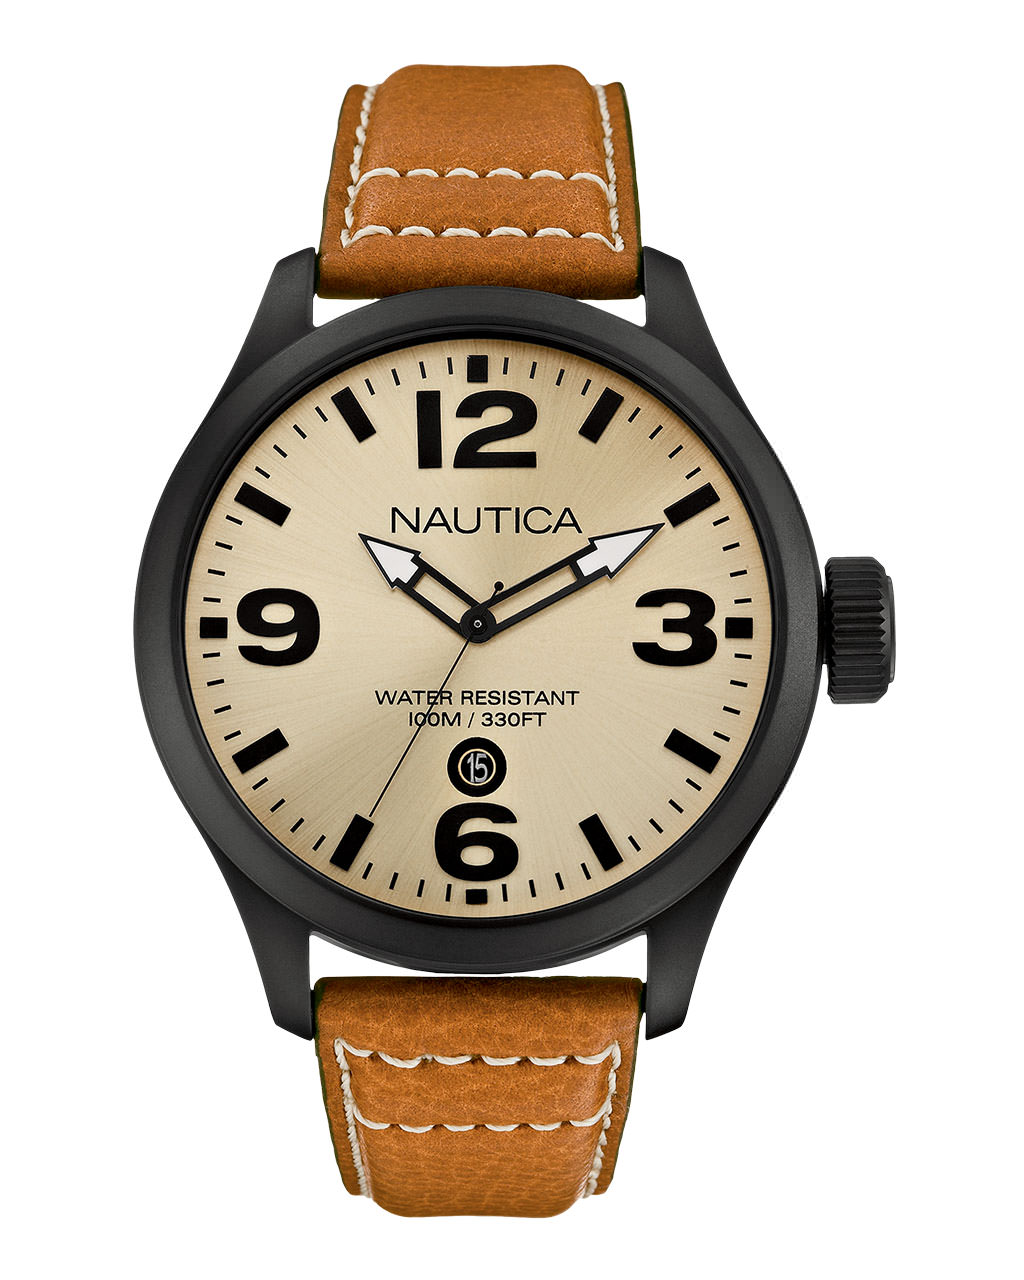 Ρολόι NAUTICA BFD 102 Brown A14634G   brands nautica